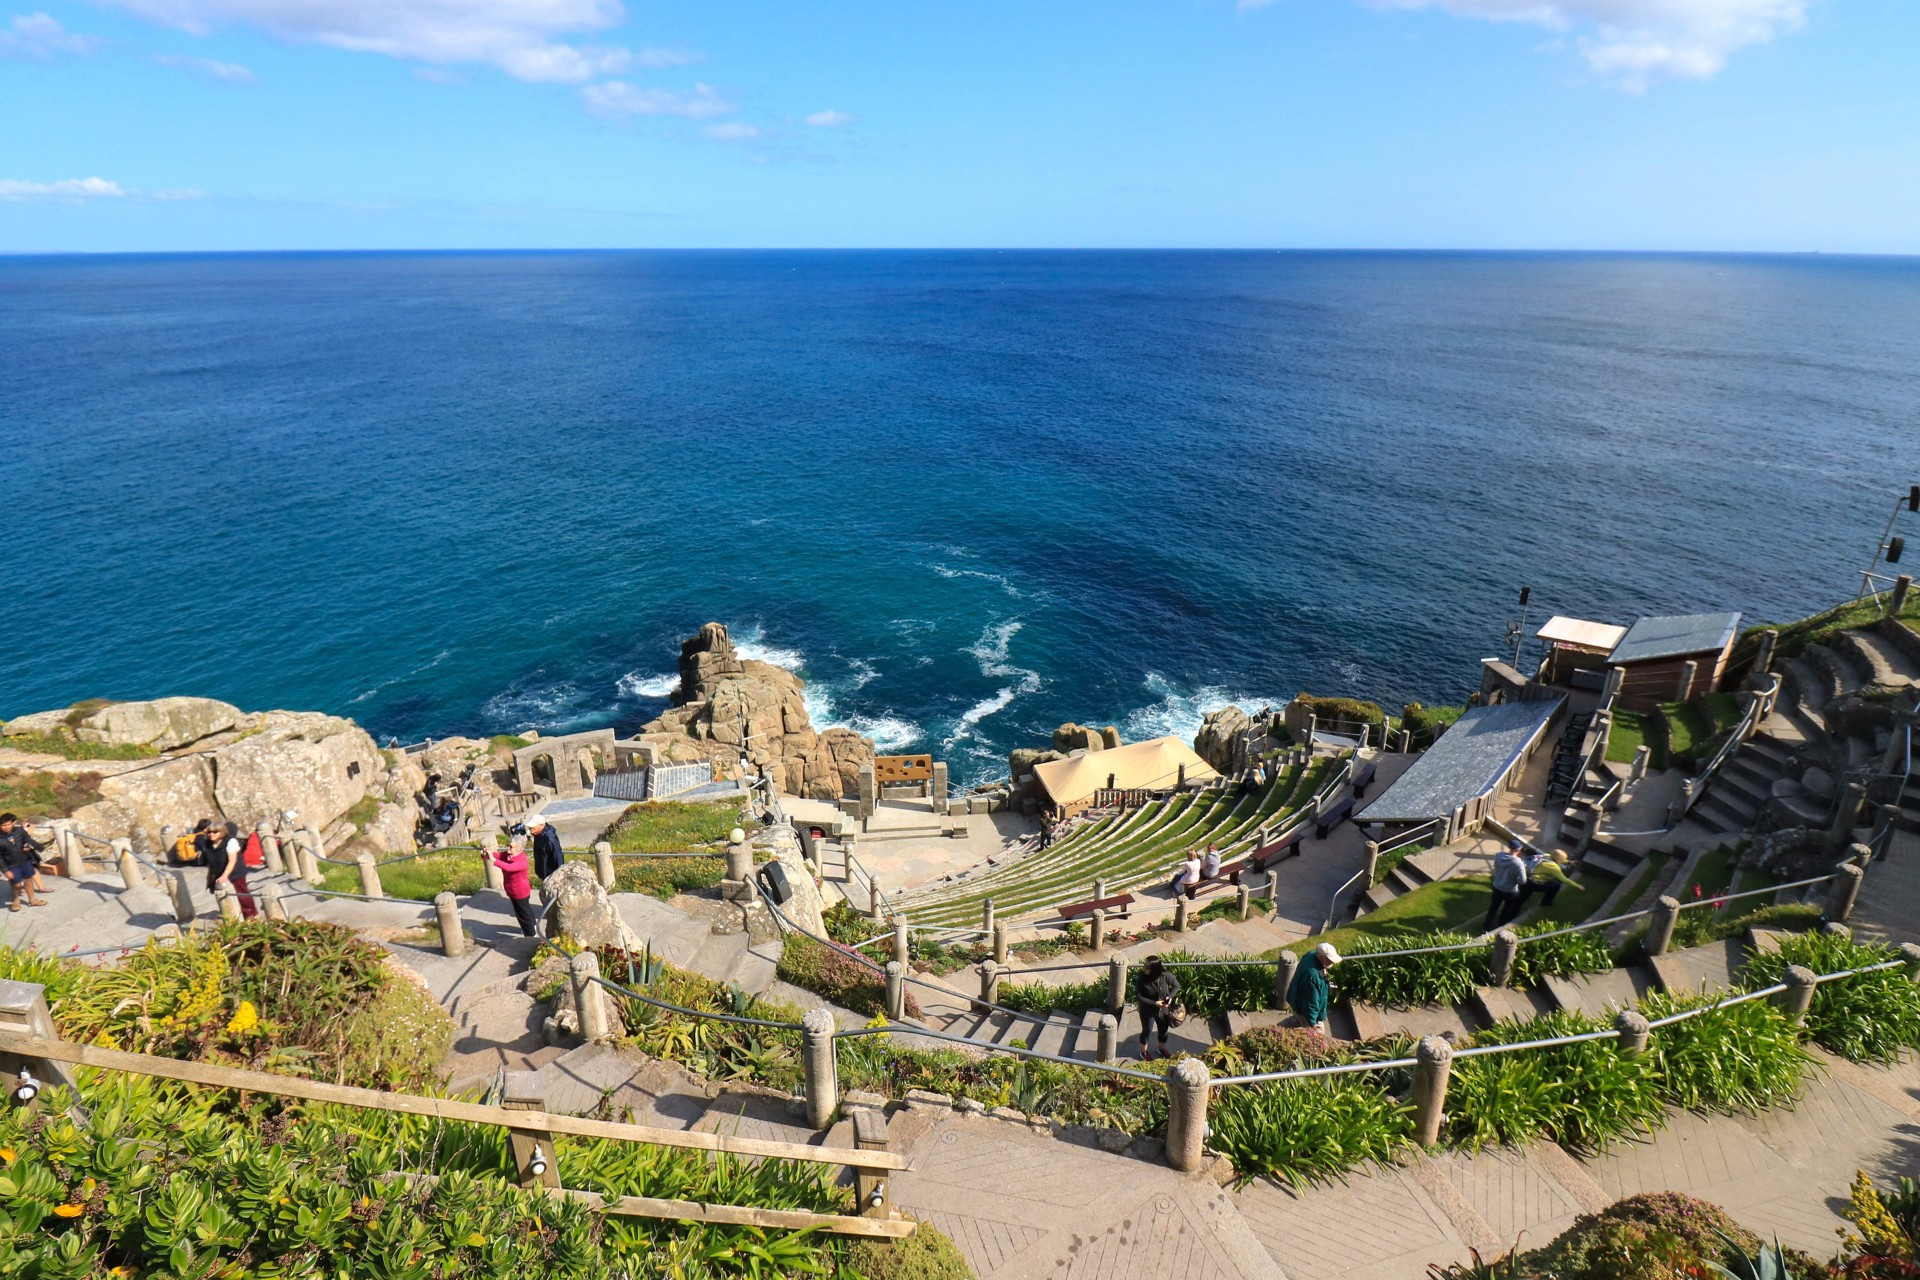 The Minack Theatre Porthcurno Beach Penzance Land's End. Summer. Blue skies. Historic Greek amphitheatre by blue, turquoise sea. 8 Great Day Trips from Exeter You Can't Miss. Exeter day trips. England, UK. Day trips from Devon. Day trips from Exeter Devon. Day trips from Exeter UK. Day trips from Exeter by train. Day tours from Exeter. Day tours from Exeter UK. Coach day trips from Exeter. Things to do in Exeter. Things to see in Exeter. Things to do in Devon. Exeter travel blog. Exeter travel guide. Bath. Bristol. Cardiff. Plymouth. English Riviera. Jurassic Coast. Dartmoor National Park. Cornwall. Click through to read more...